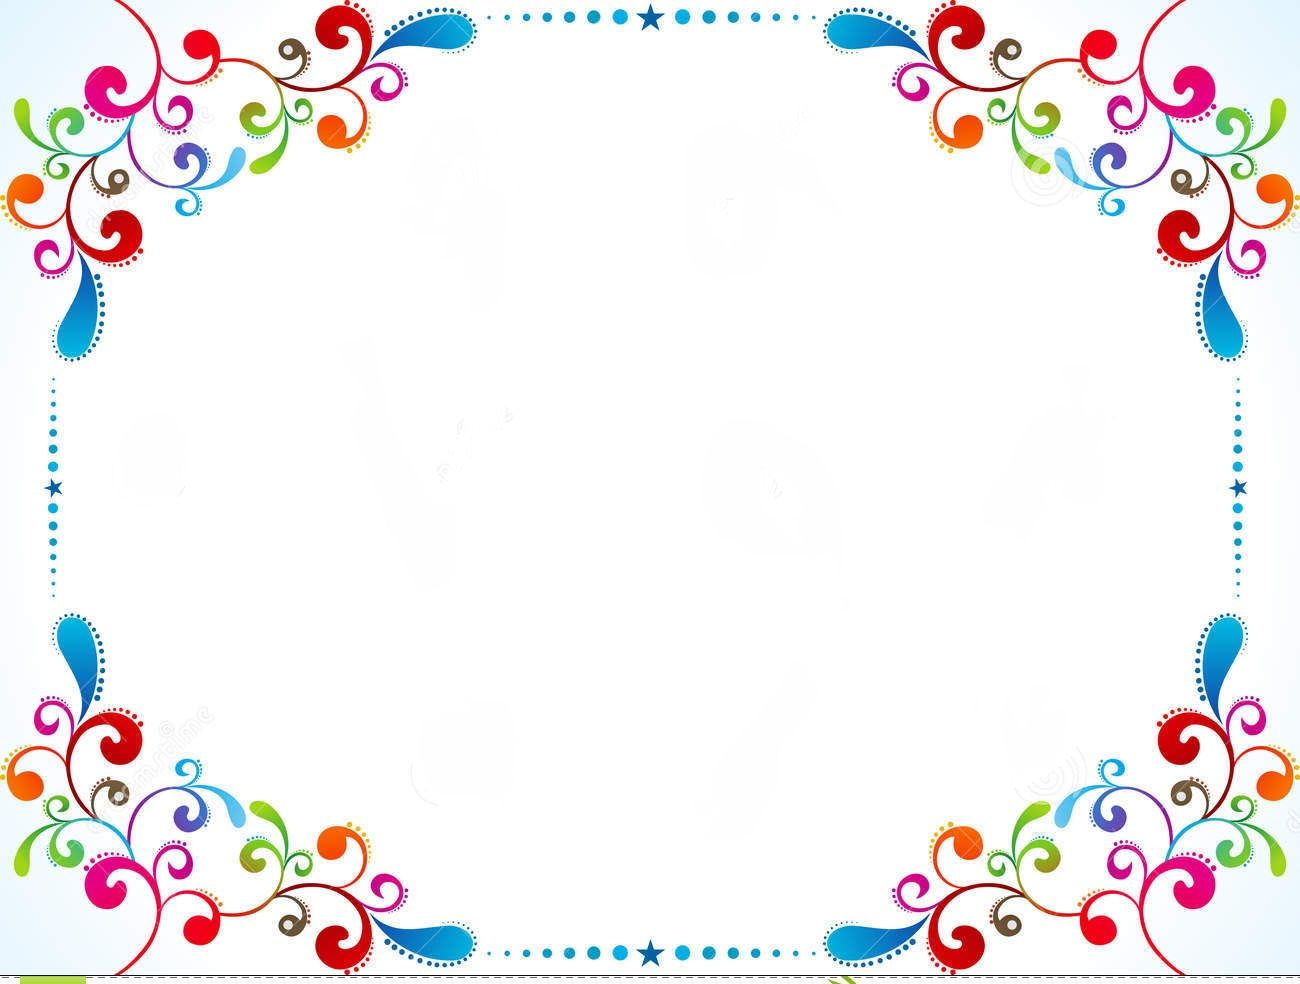 Cute photo frame clipart royalty free download Pin by shaheen perwaz on Frames & beautiful Boards | Page borders ... royalty free download